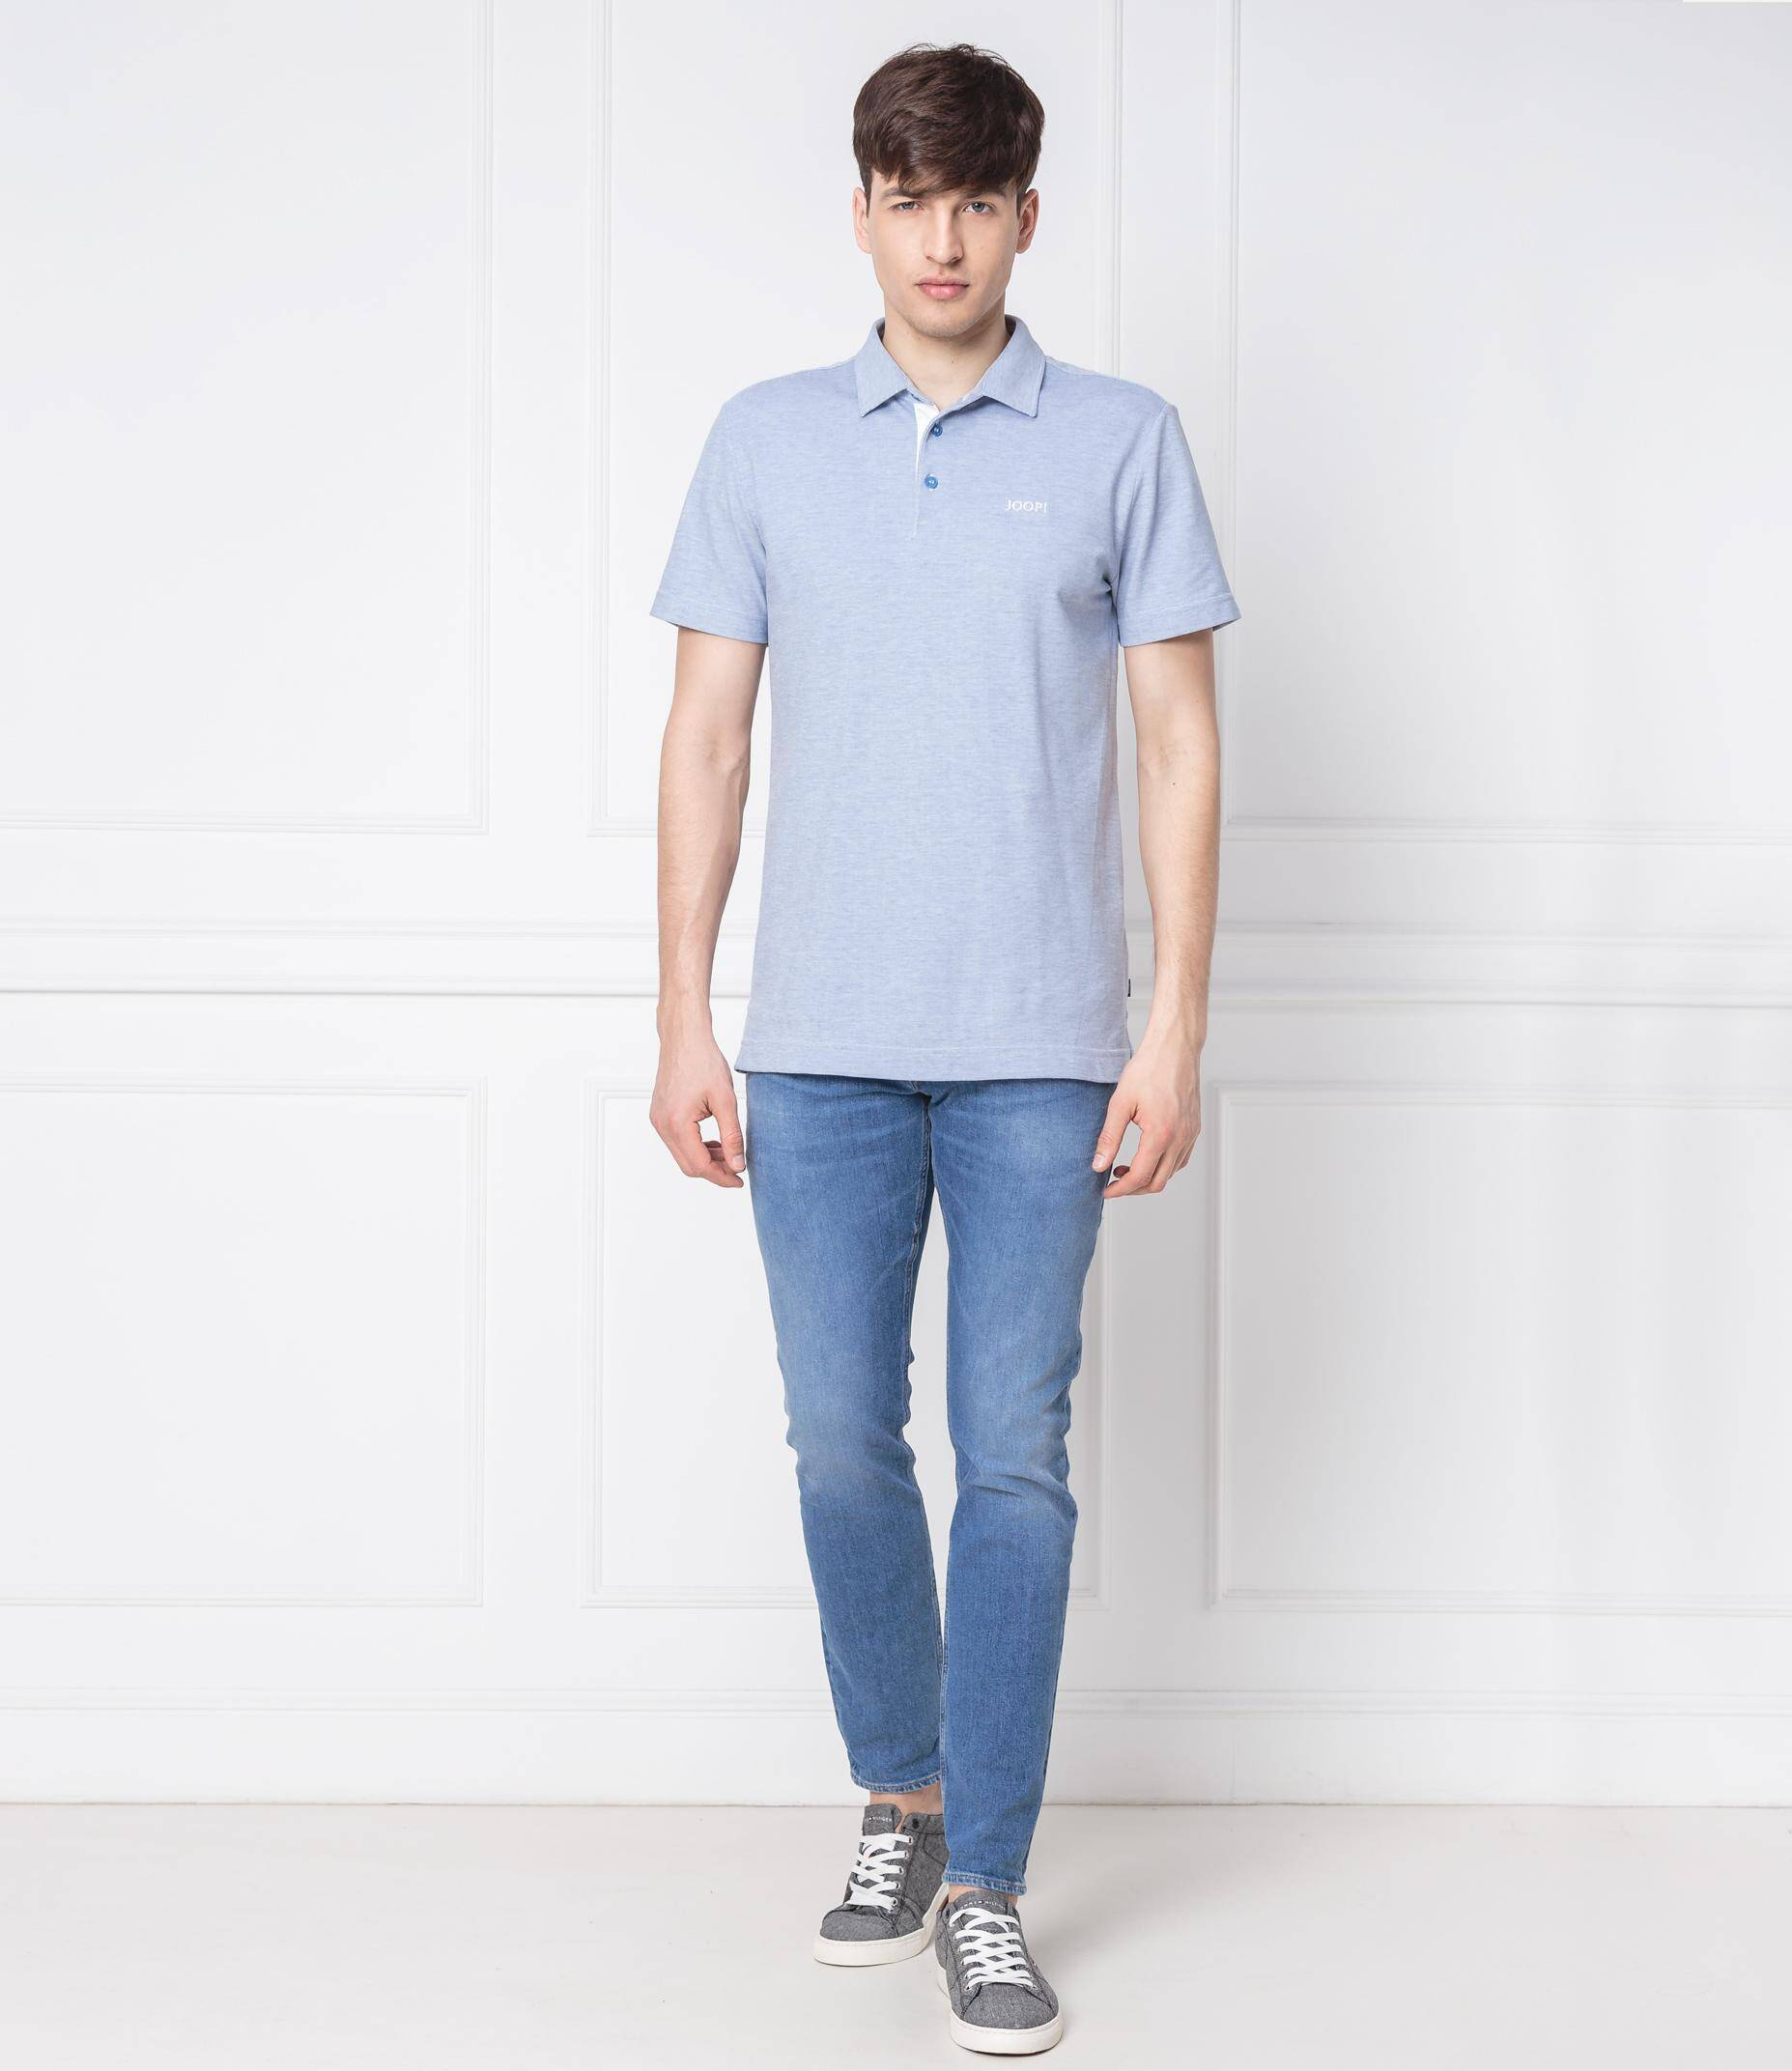 PercyRegular Pique JoopCollection Blue Polo Baby Fit xtsdCoQrBh